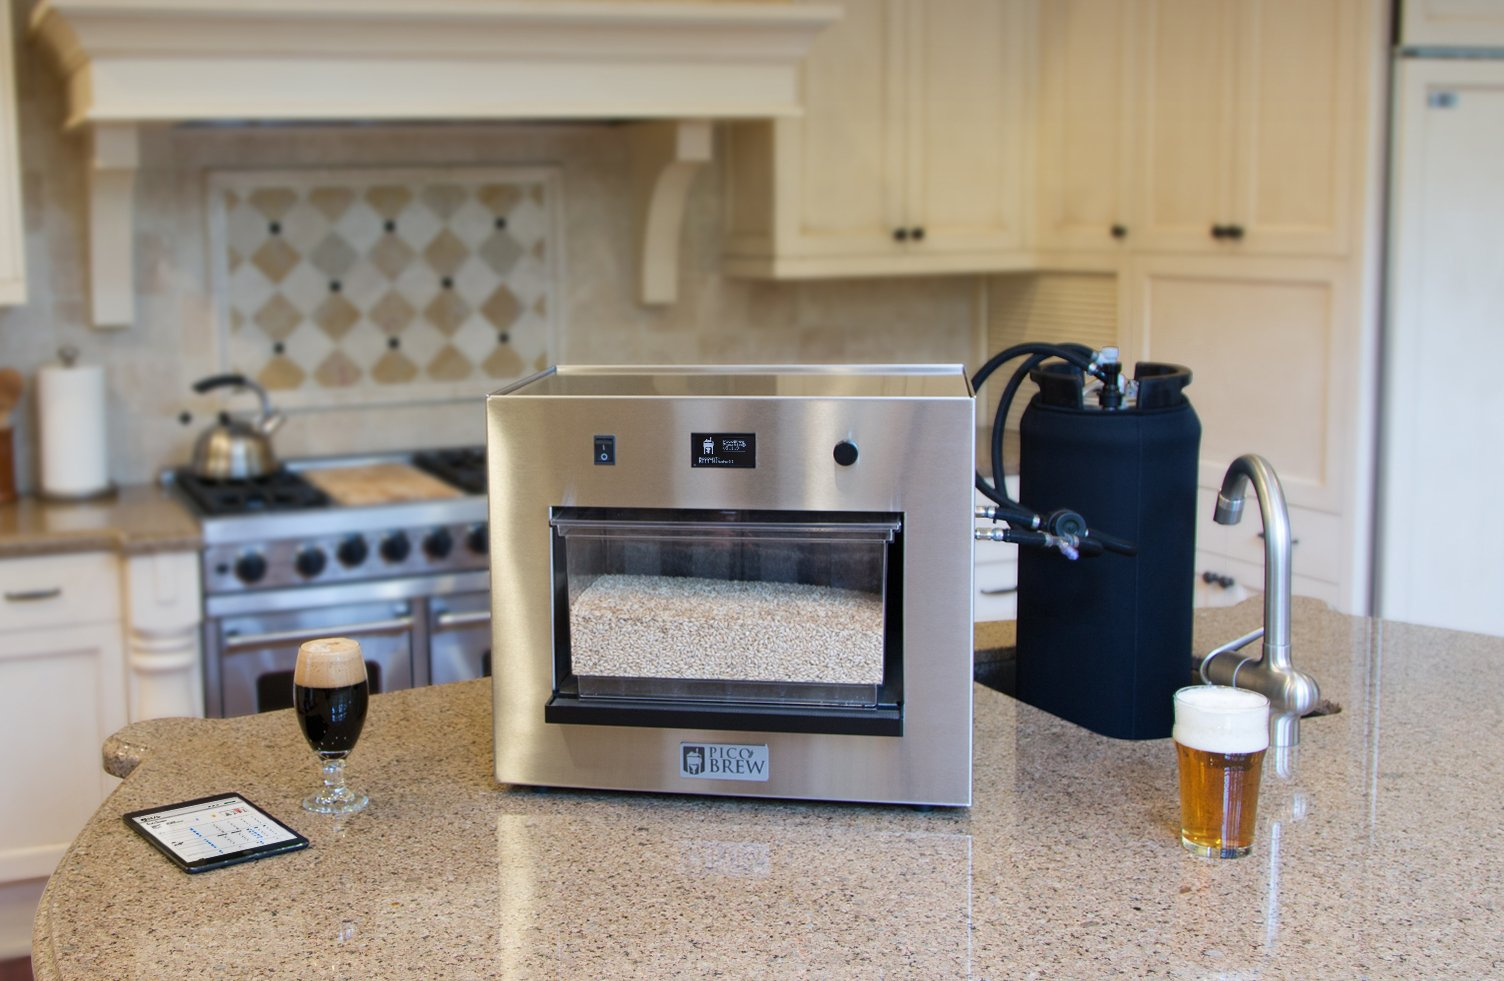 PicoBrew Zymatic - Automatic All-Grain Craft Beer Brewing Appliance For Your Brewery or Home Brewing - Brew From A Recipe Library with Thousands of Proven Beers or Make Your Own